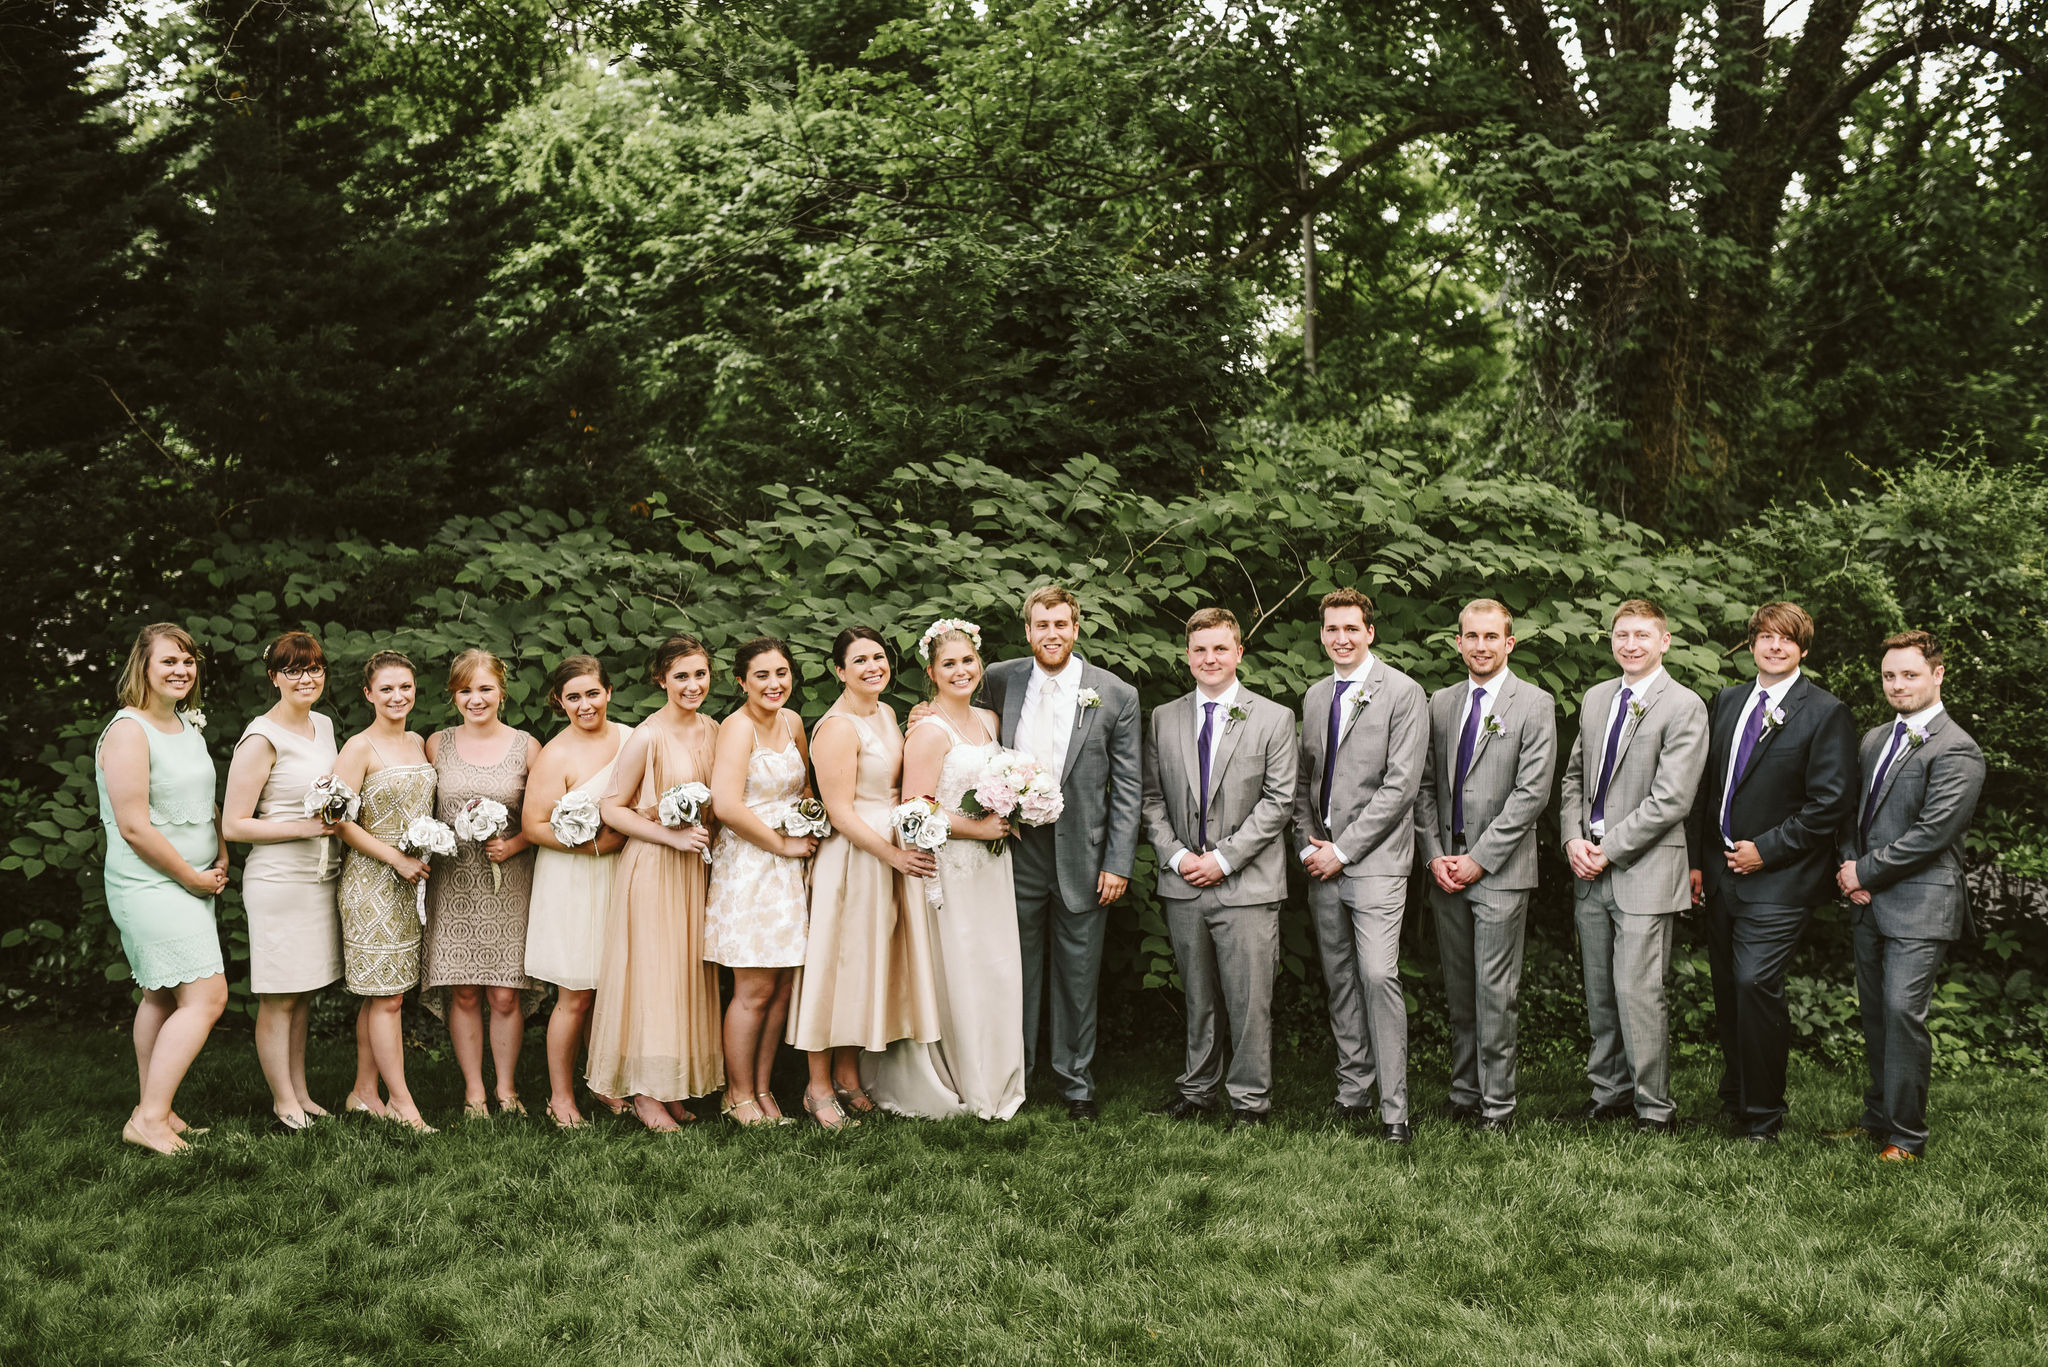 Hampden, Baltimore, Maryland Wedding Photographer, Garden Wedding, Classic, DIY, Romantic, Portrait of Bride and Groom with Entire Wedding Party, Bridesmaids and Groomsmen